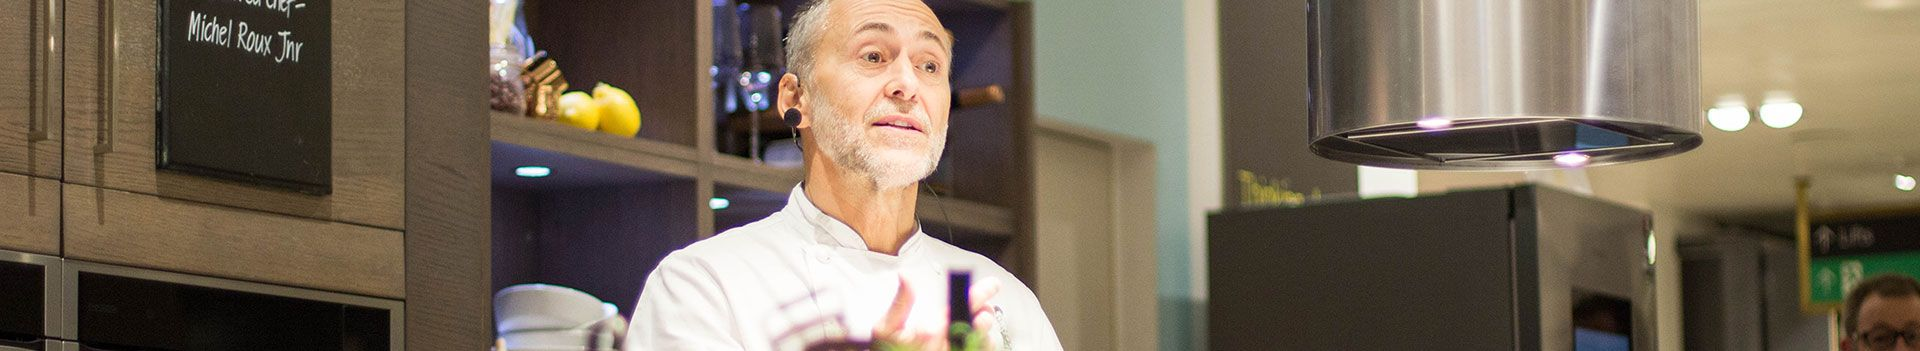 Michel Roux behind counter